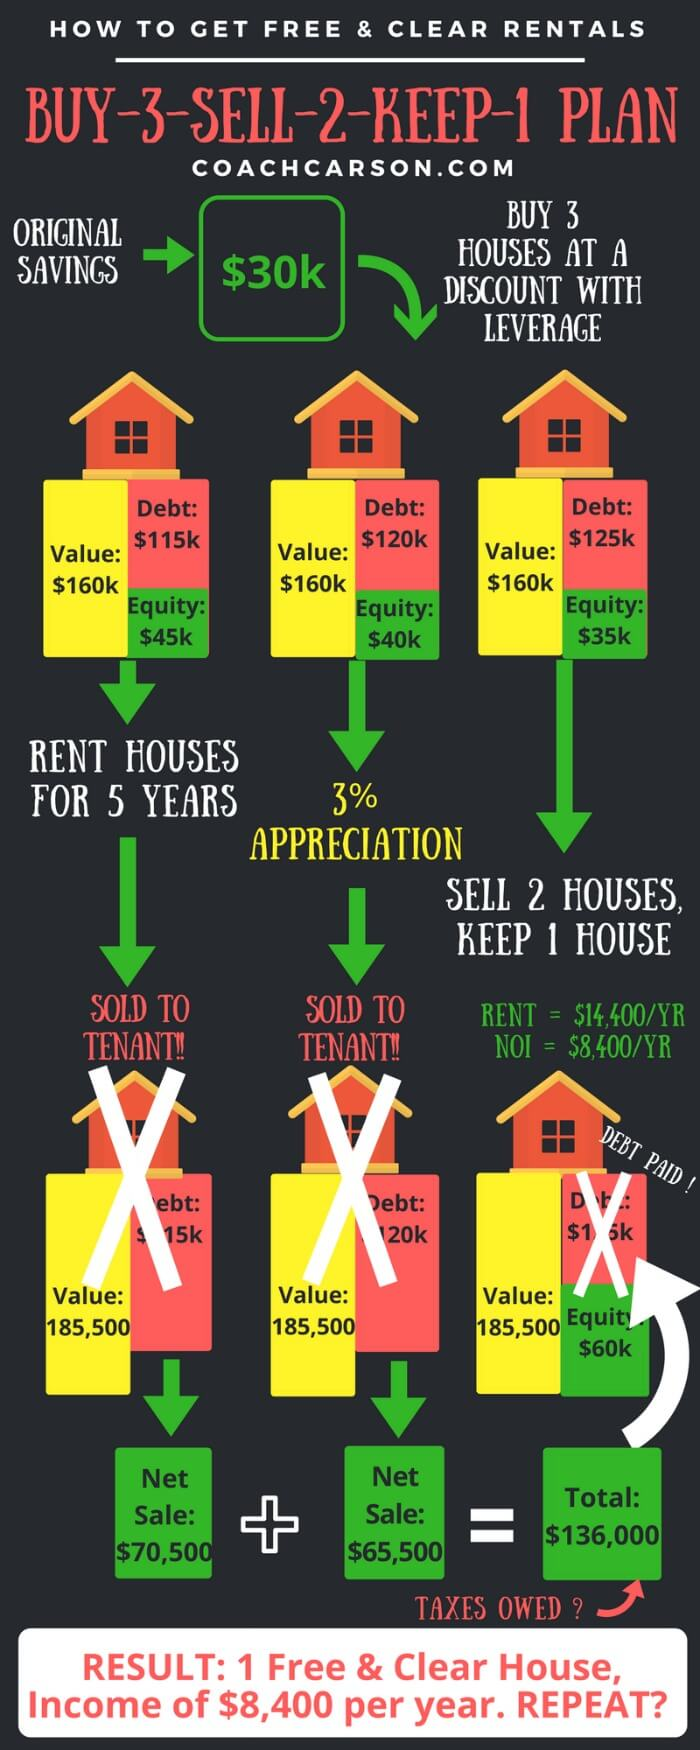 Buy-3-Sell-2-Keep-1 Plan - Free & Clear Rentals - Infographic - How to Get Free & Clear Rental Properties